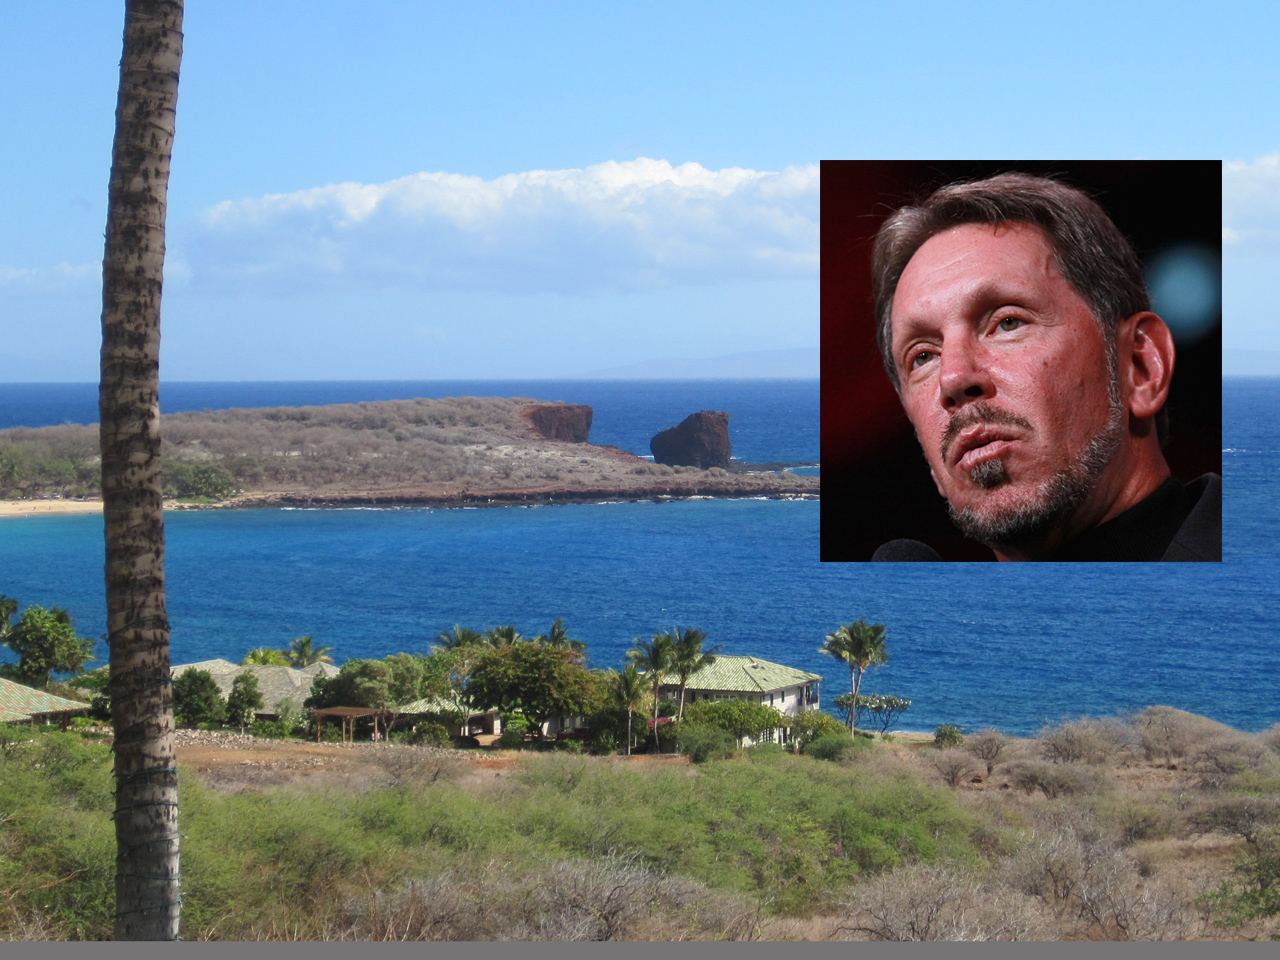 Oracle Corp. CEO Larry Ellison To Buy Most Of Hawaiian